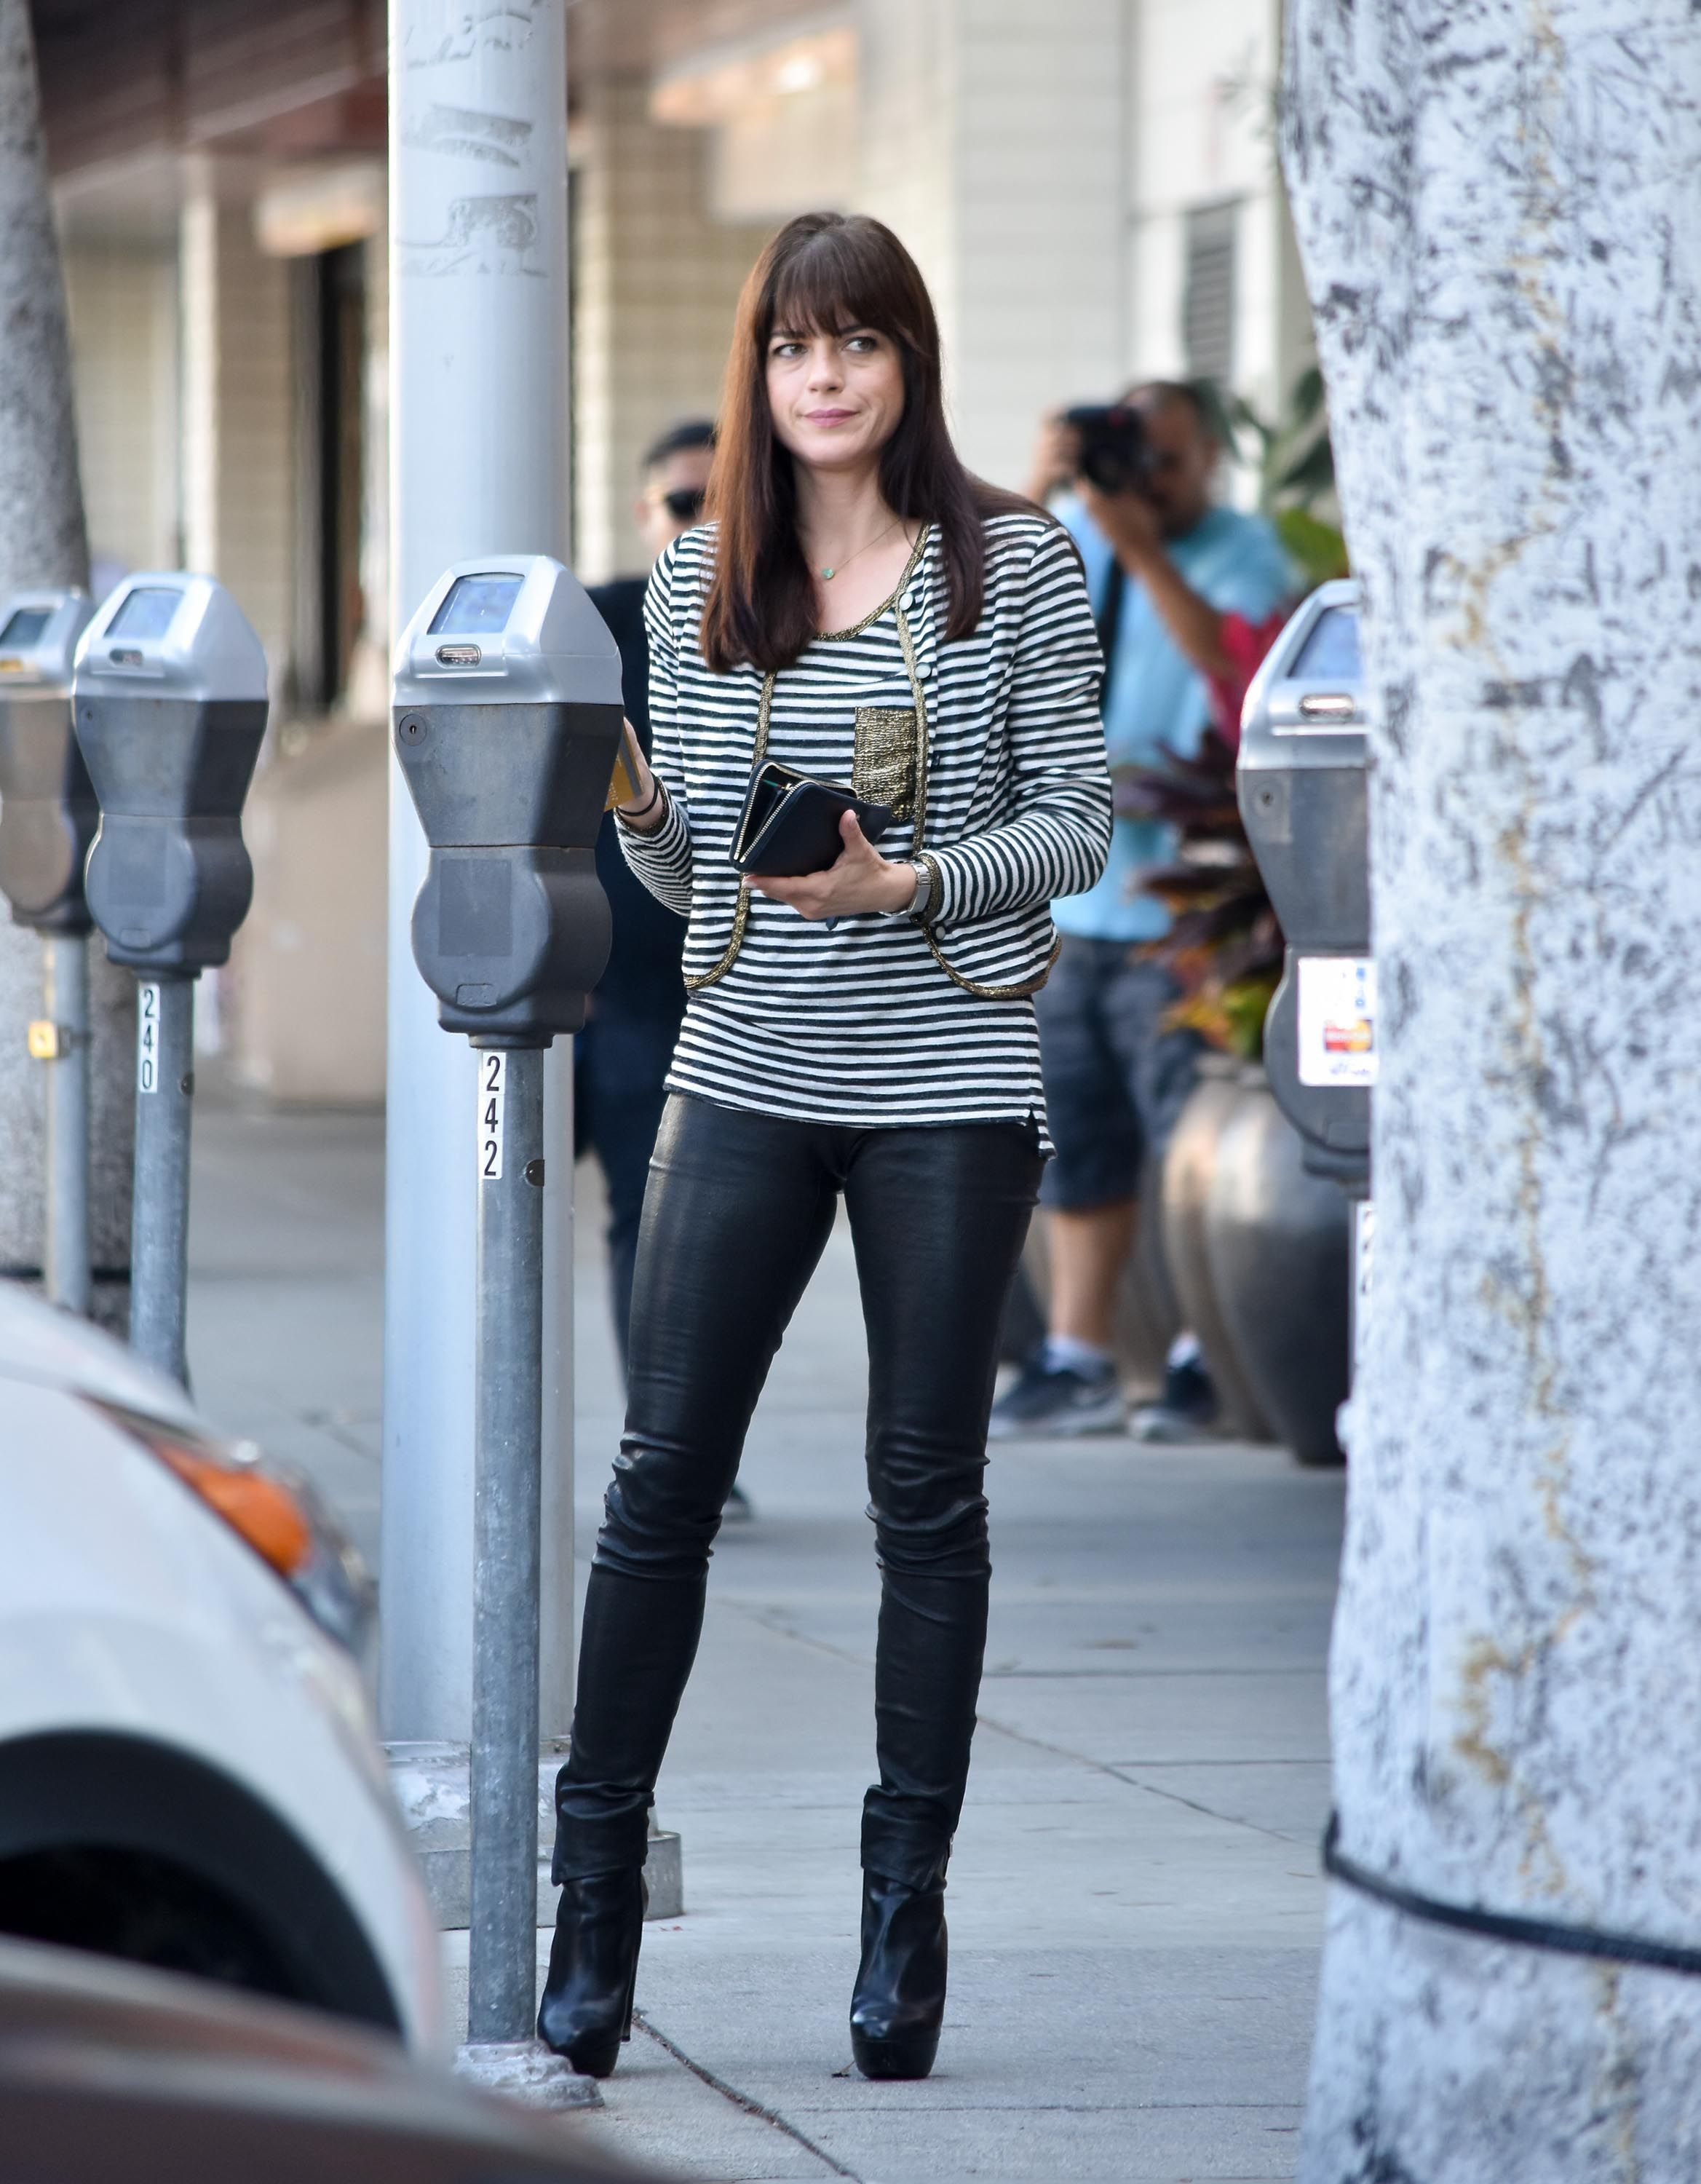 acc03fa9d12 Selma Blair out and about in LA